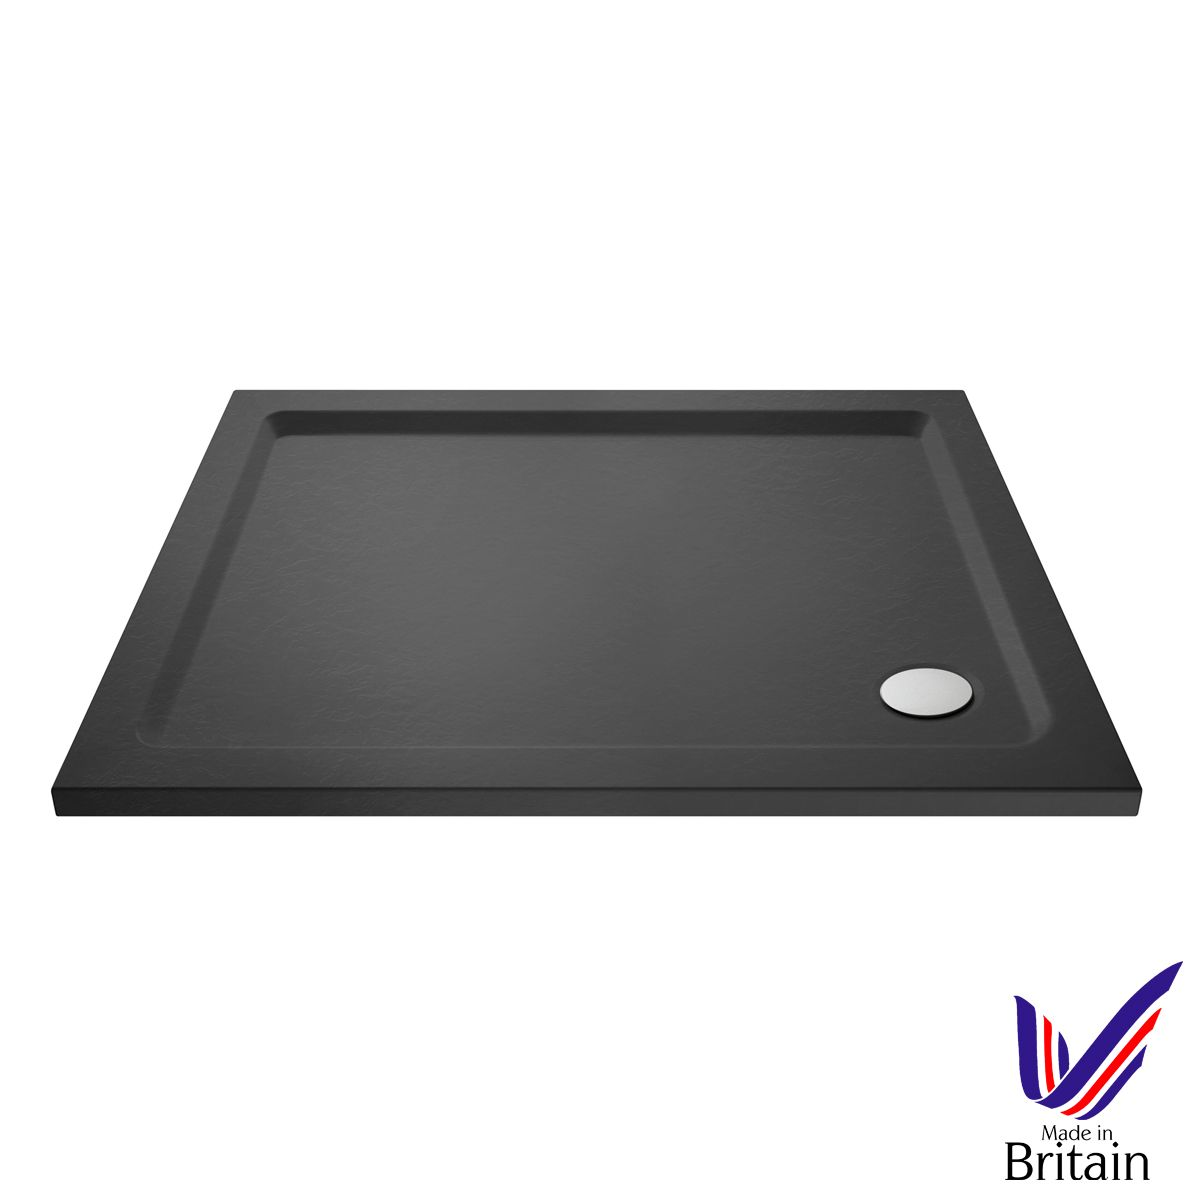 1200 x 700 Shower Tray Slate Grey Rectangular Low Profile by Pearlstone